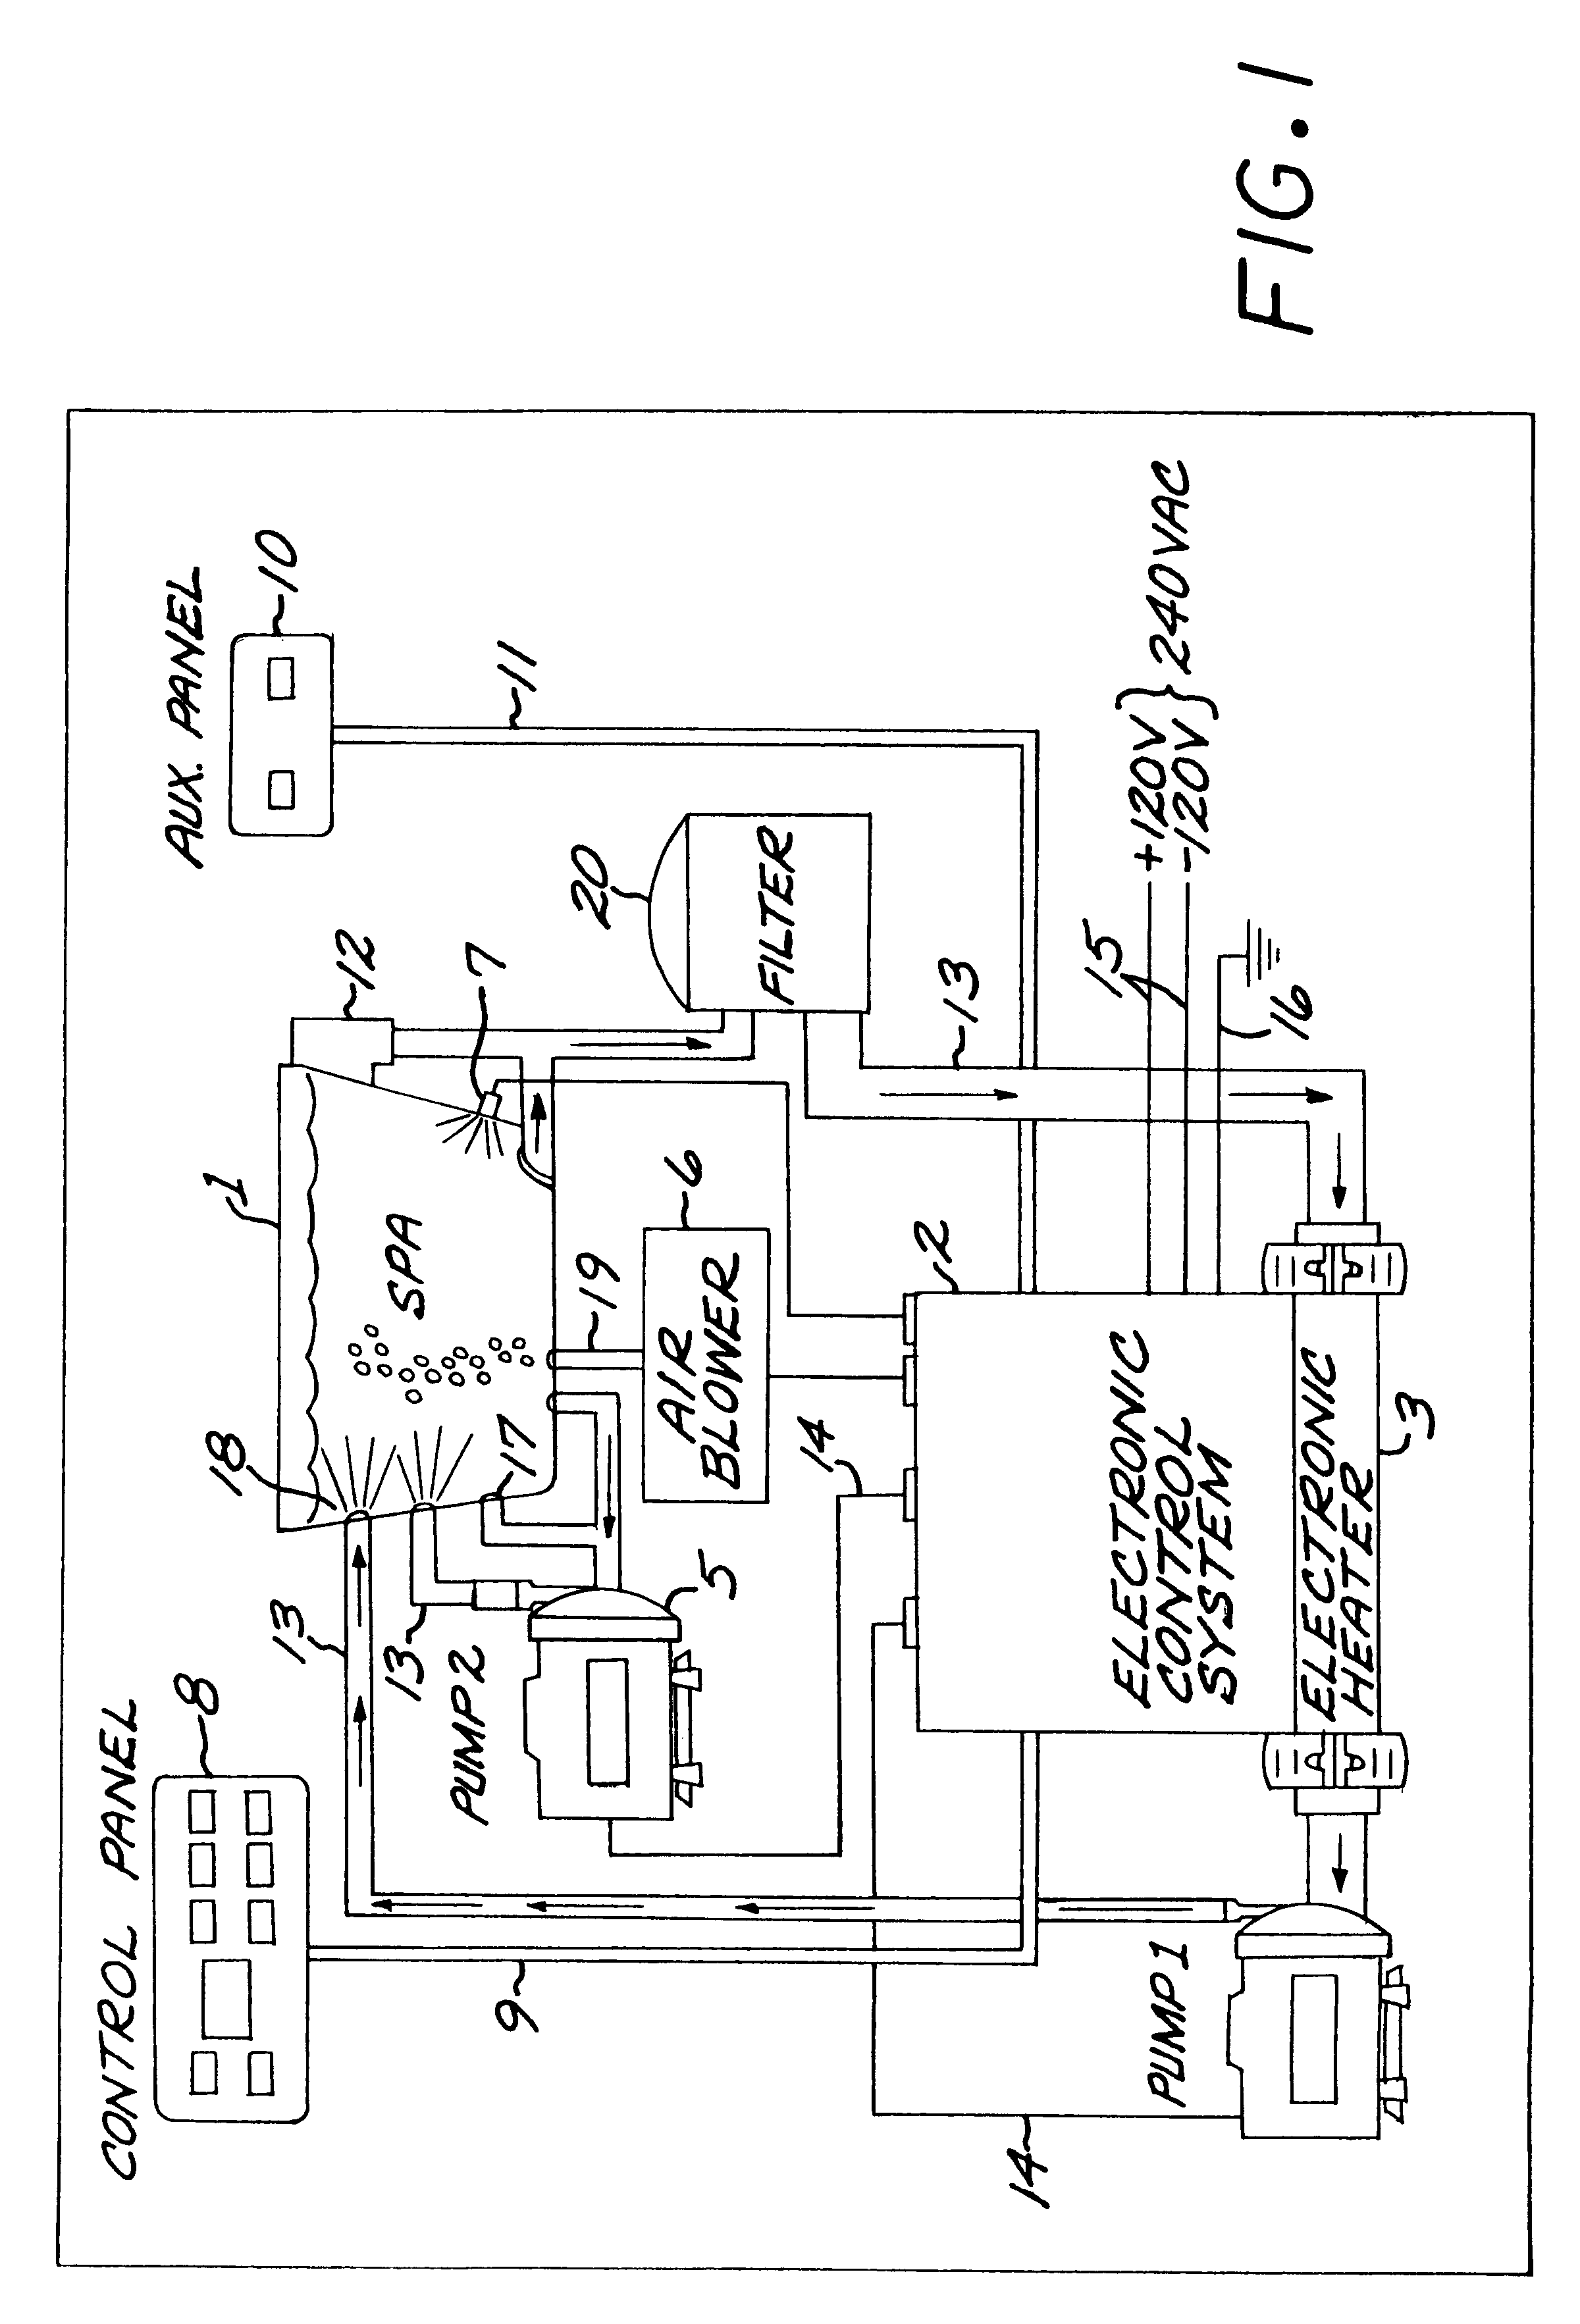 Sequoia Hot Tub Wiring Diagram Guide And Troubleshooting Of 220 Softub Third Level Rh 12 9 15 Jacobwinterstein Com